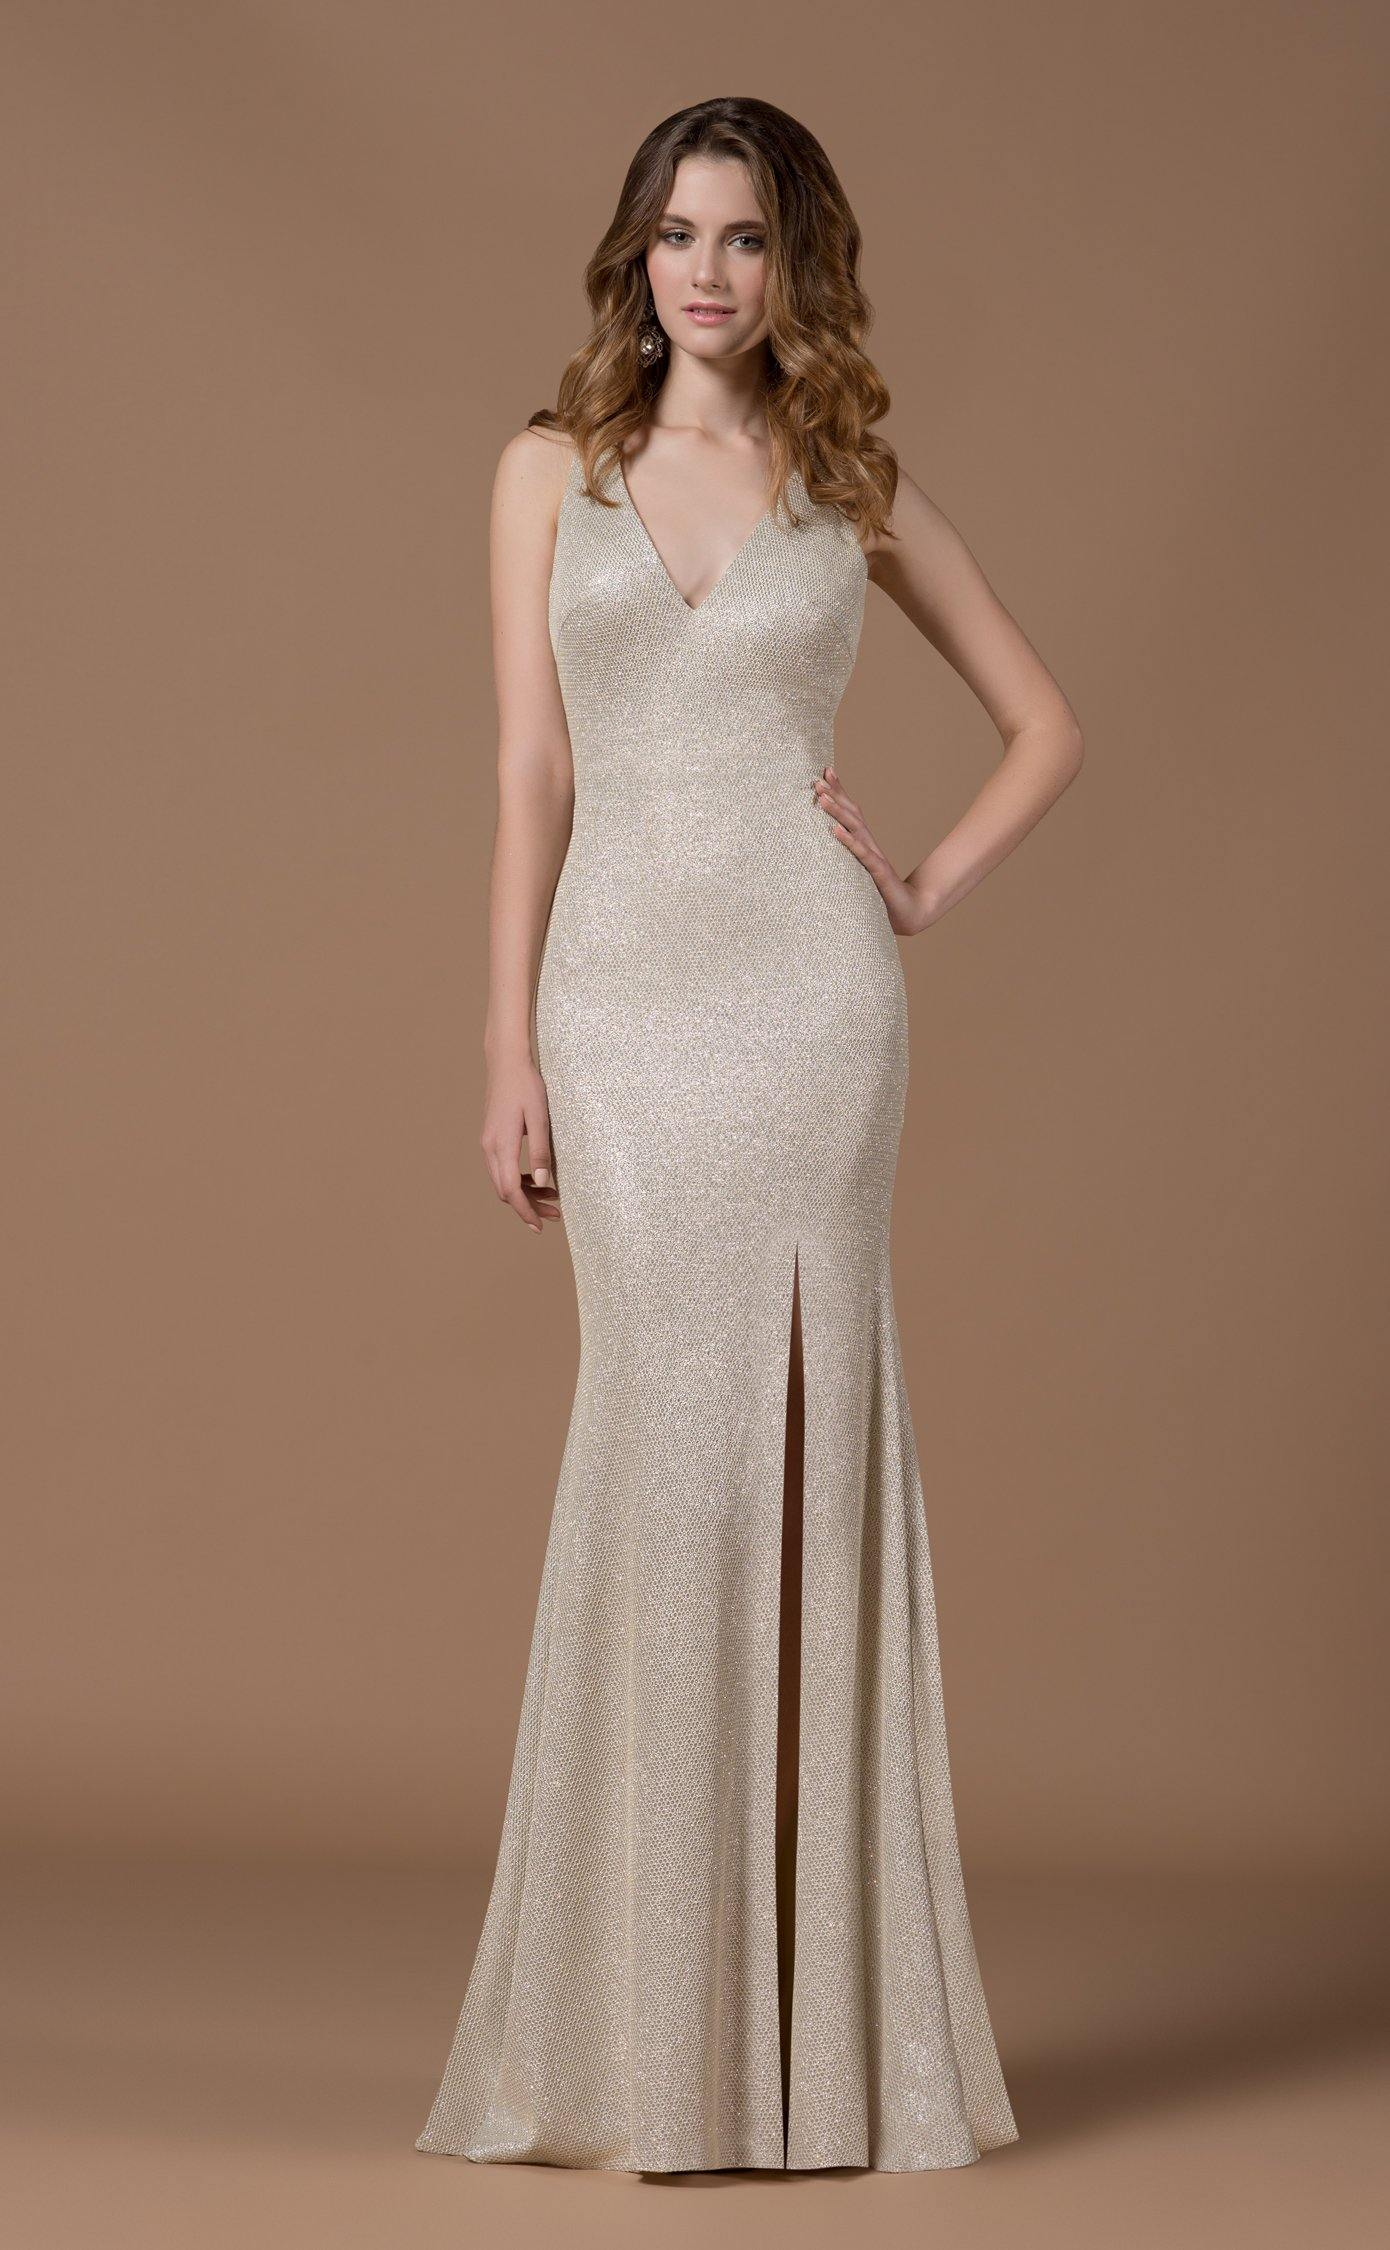 GC7073 - Elliott Chambers    - Bridal -  Debs Dresses -  Communion dresses